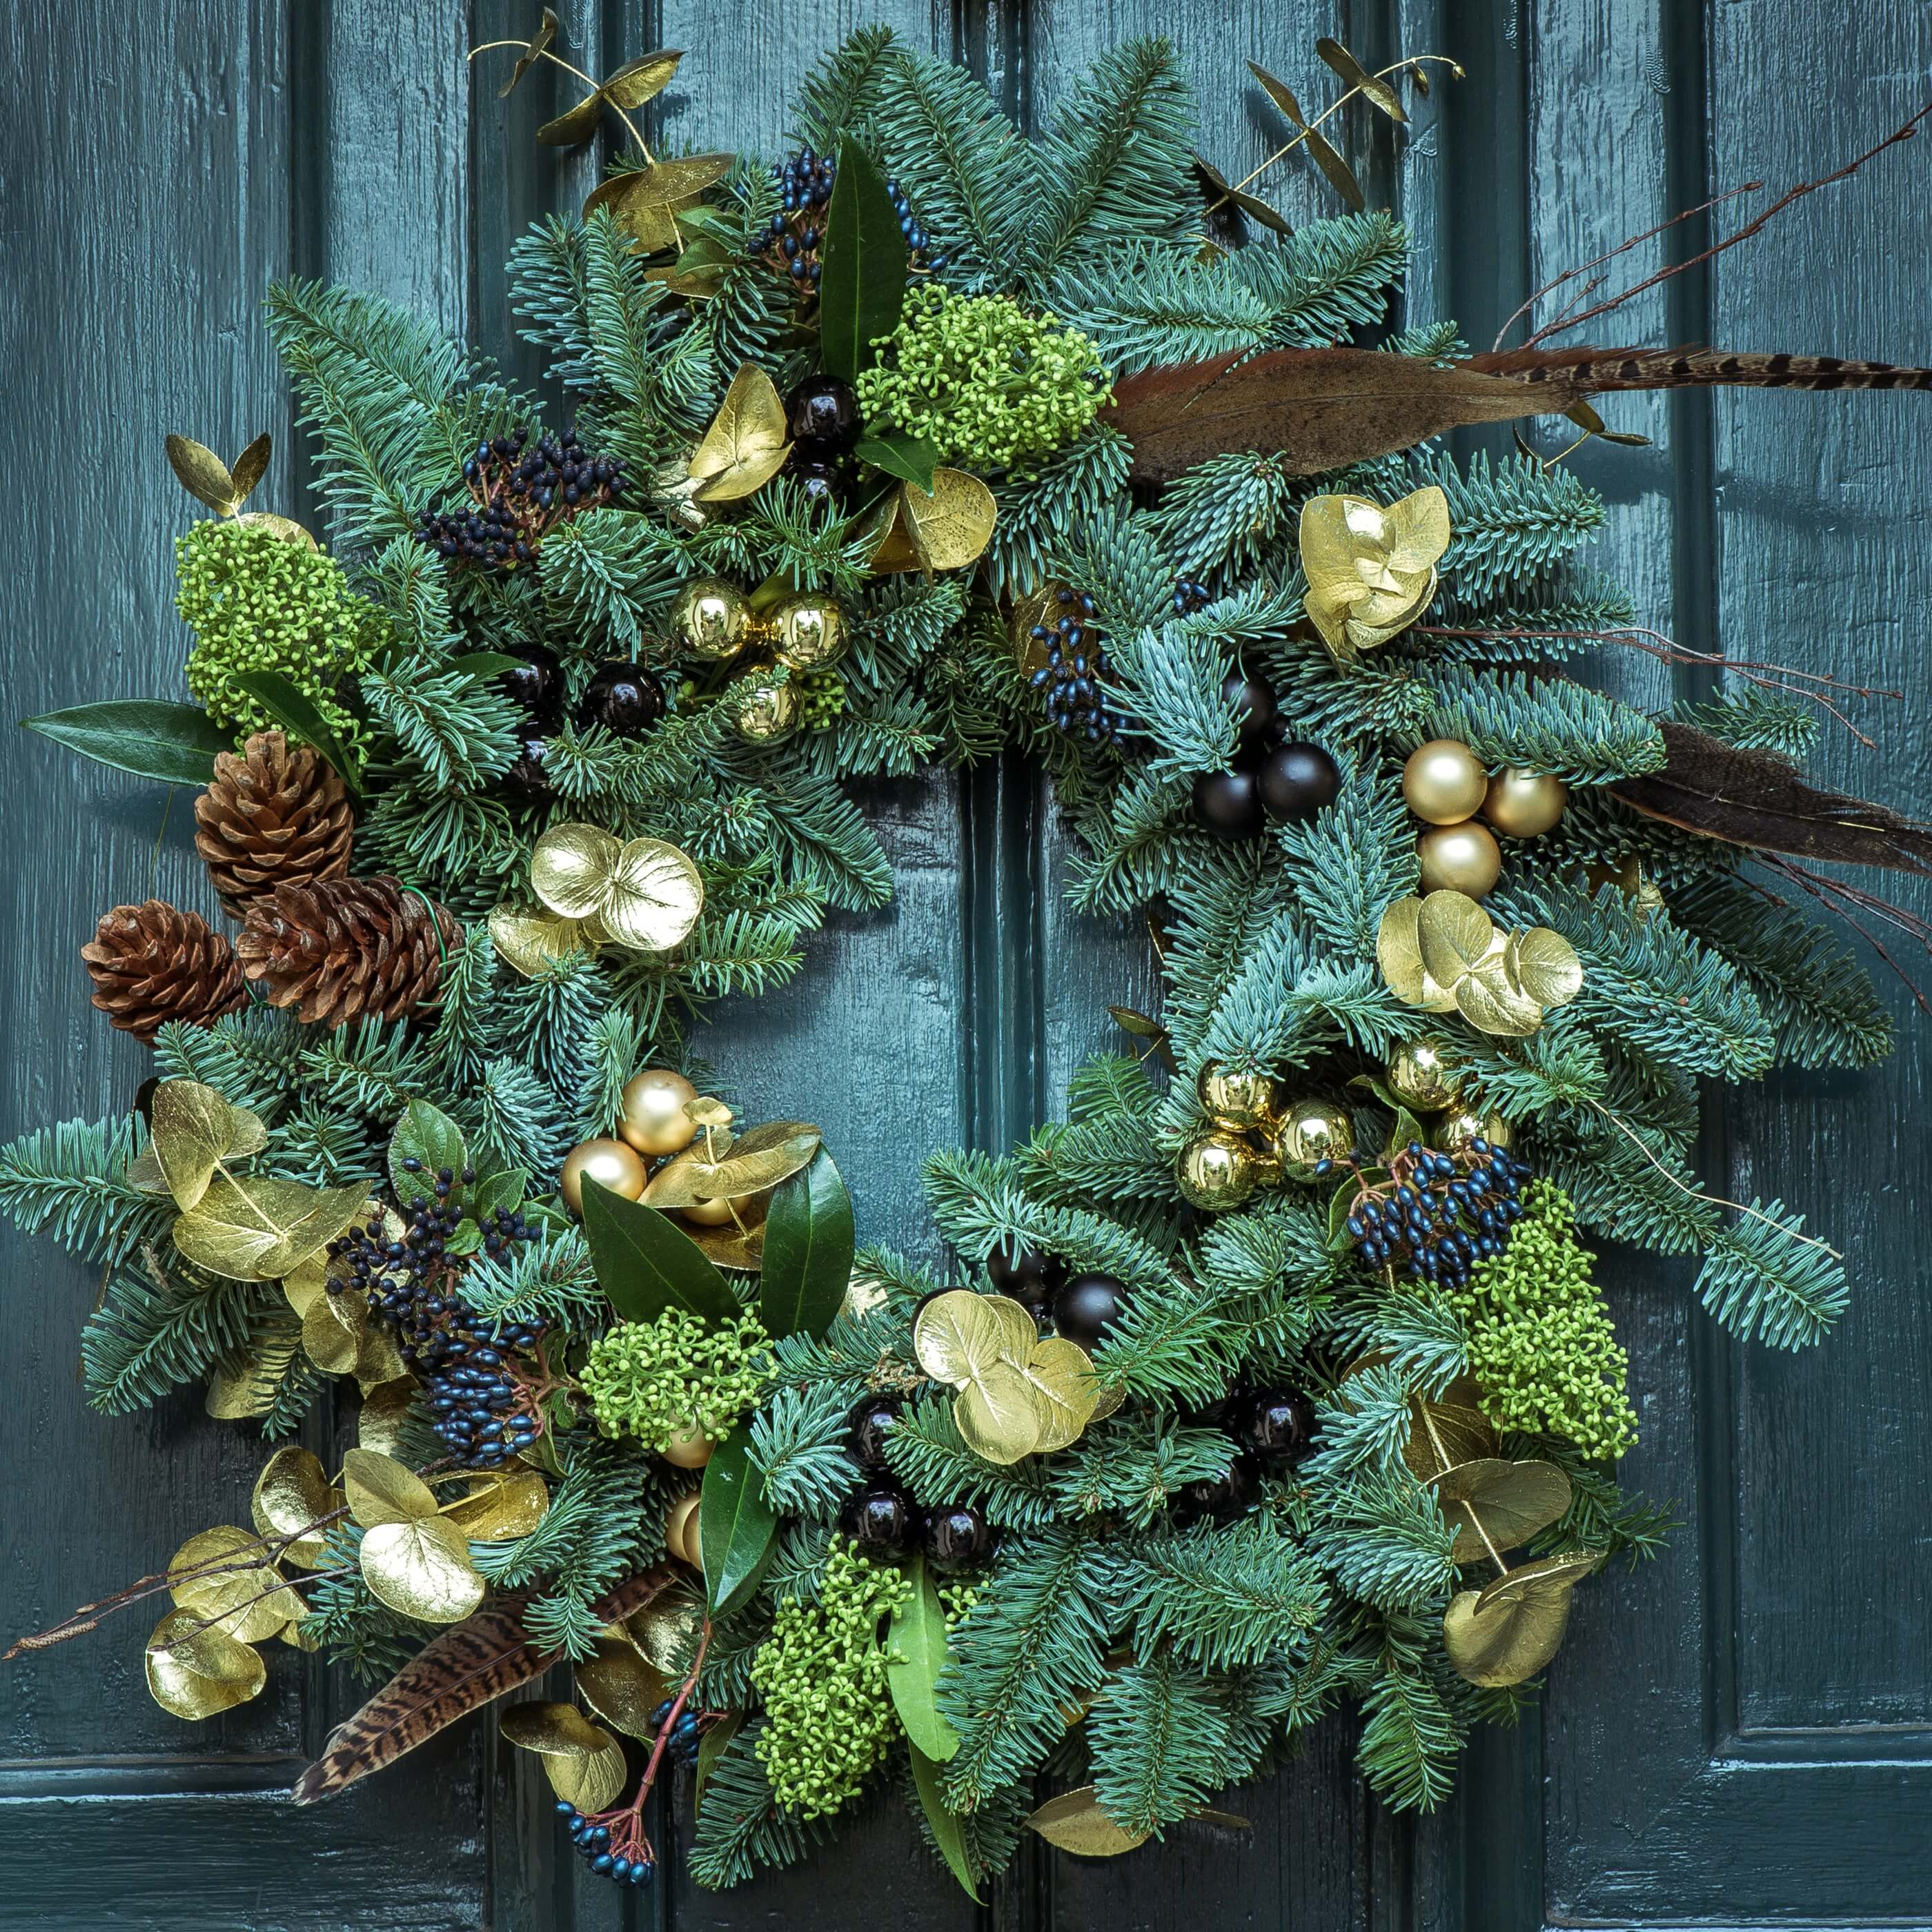 Christmas Wreath Making Workshops 2019